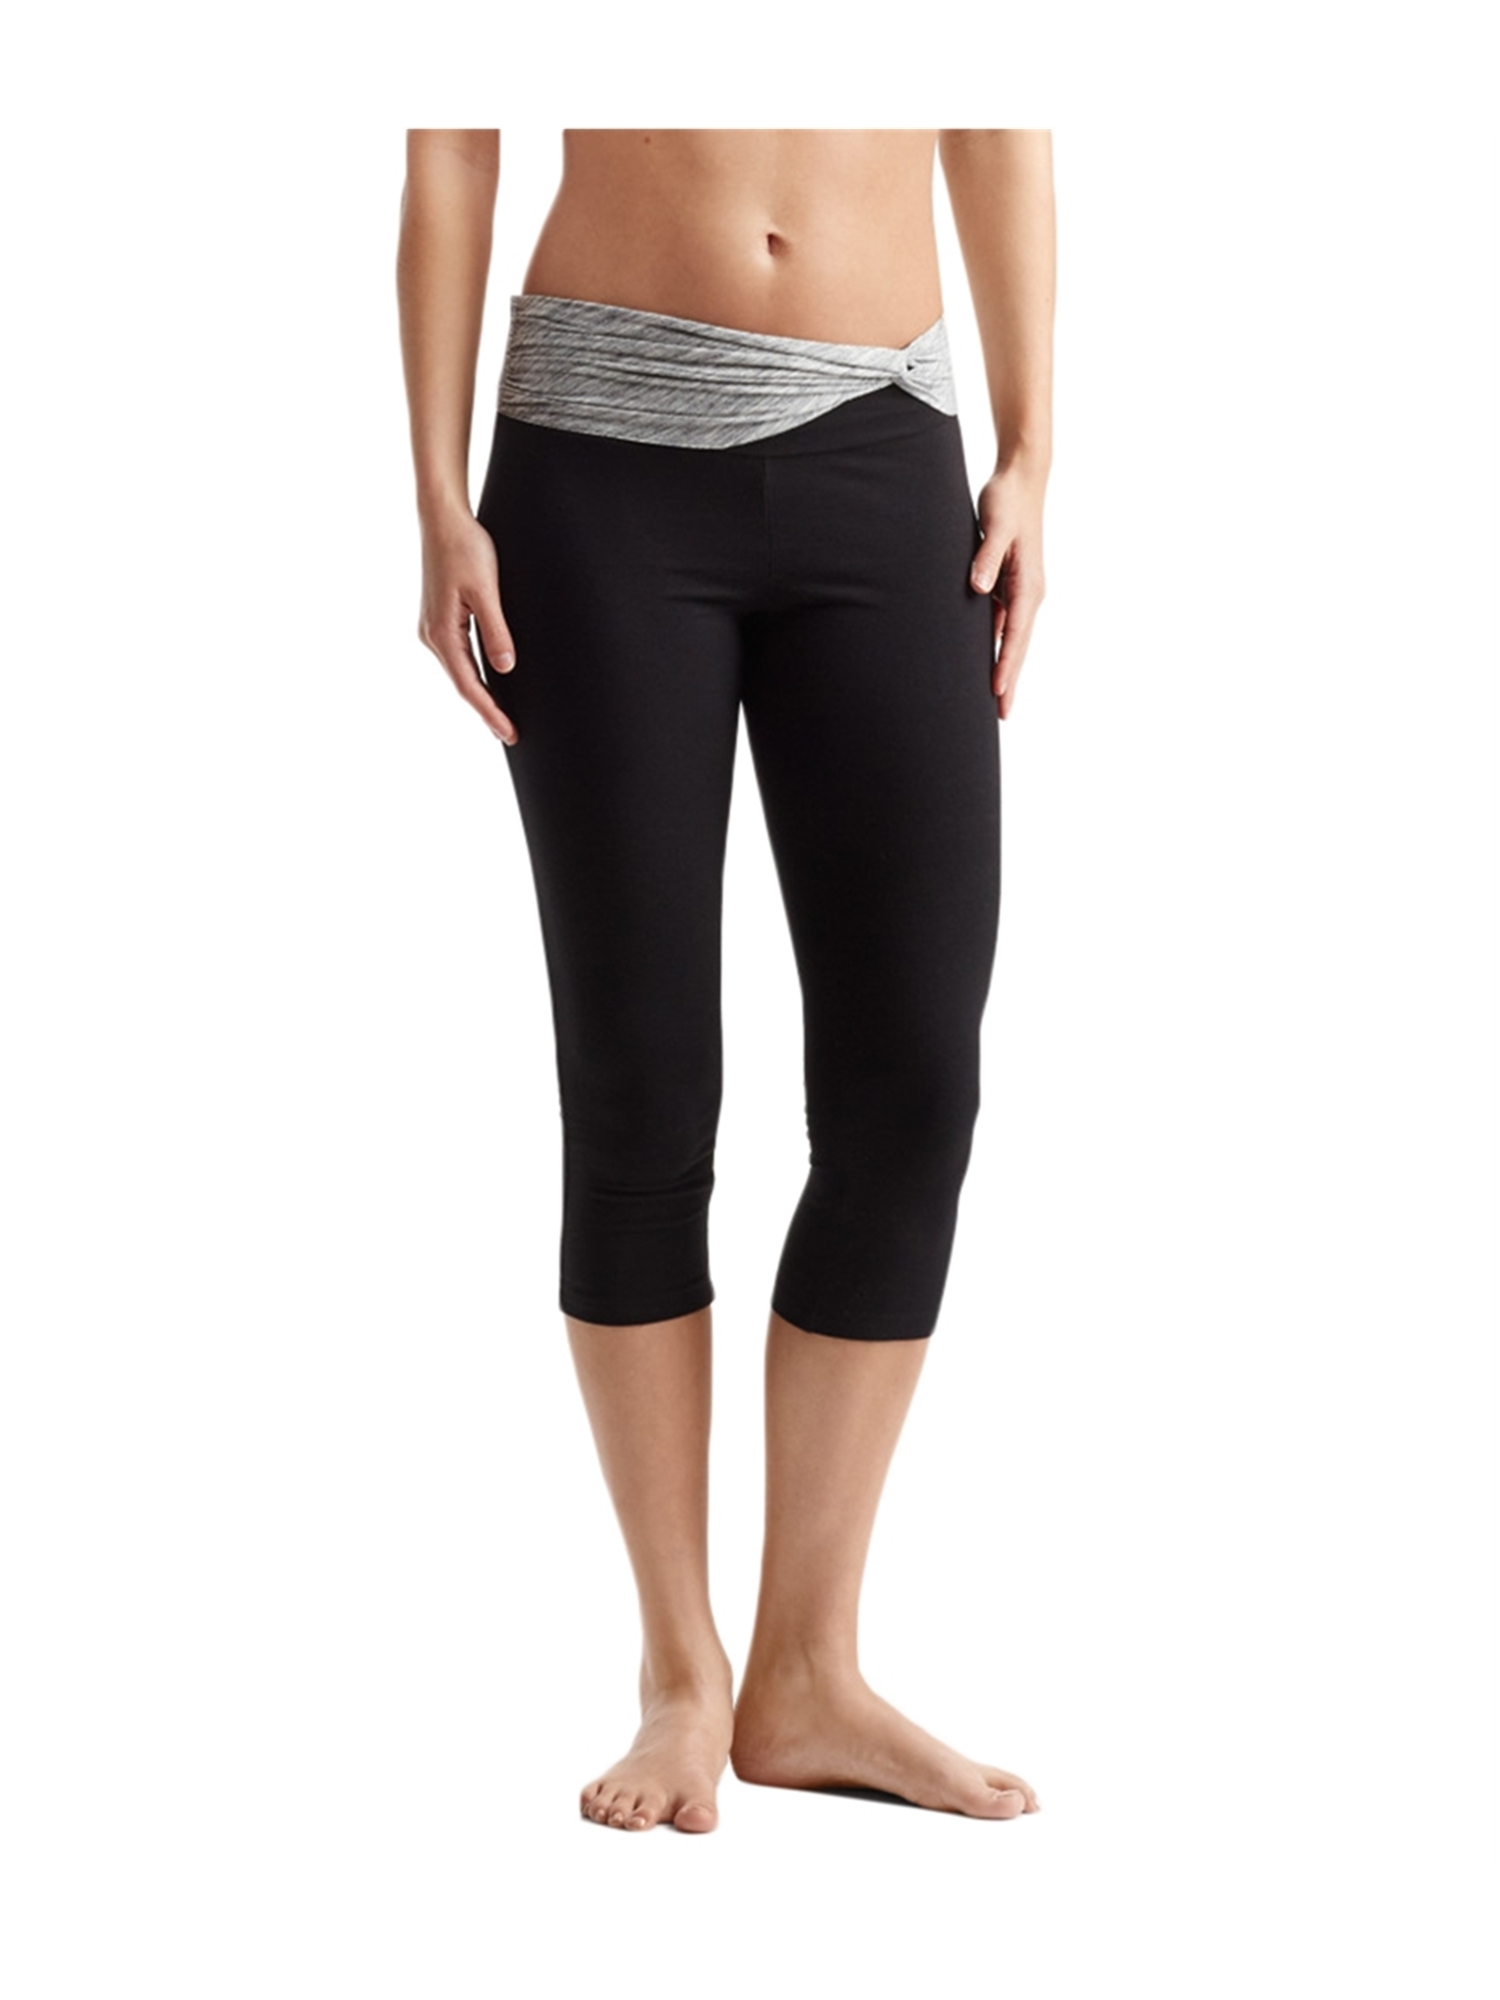 Aeropostale Juniors Knotted Band Crop Casual Leggings